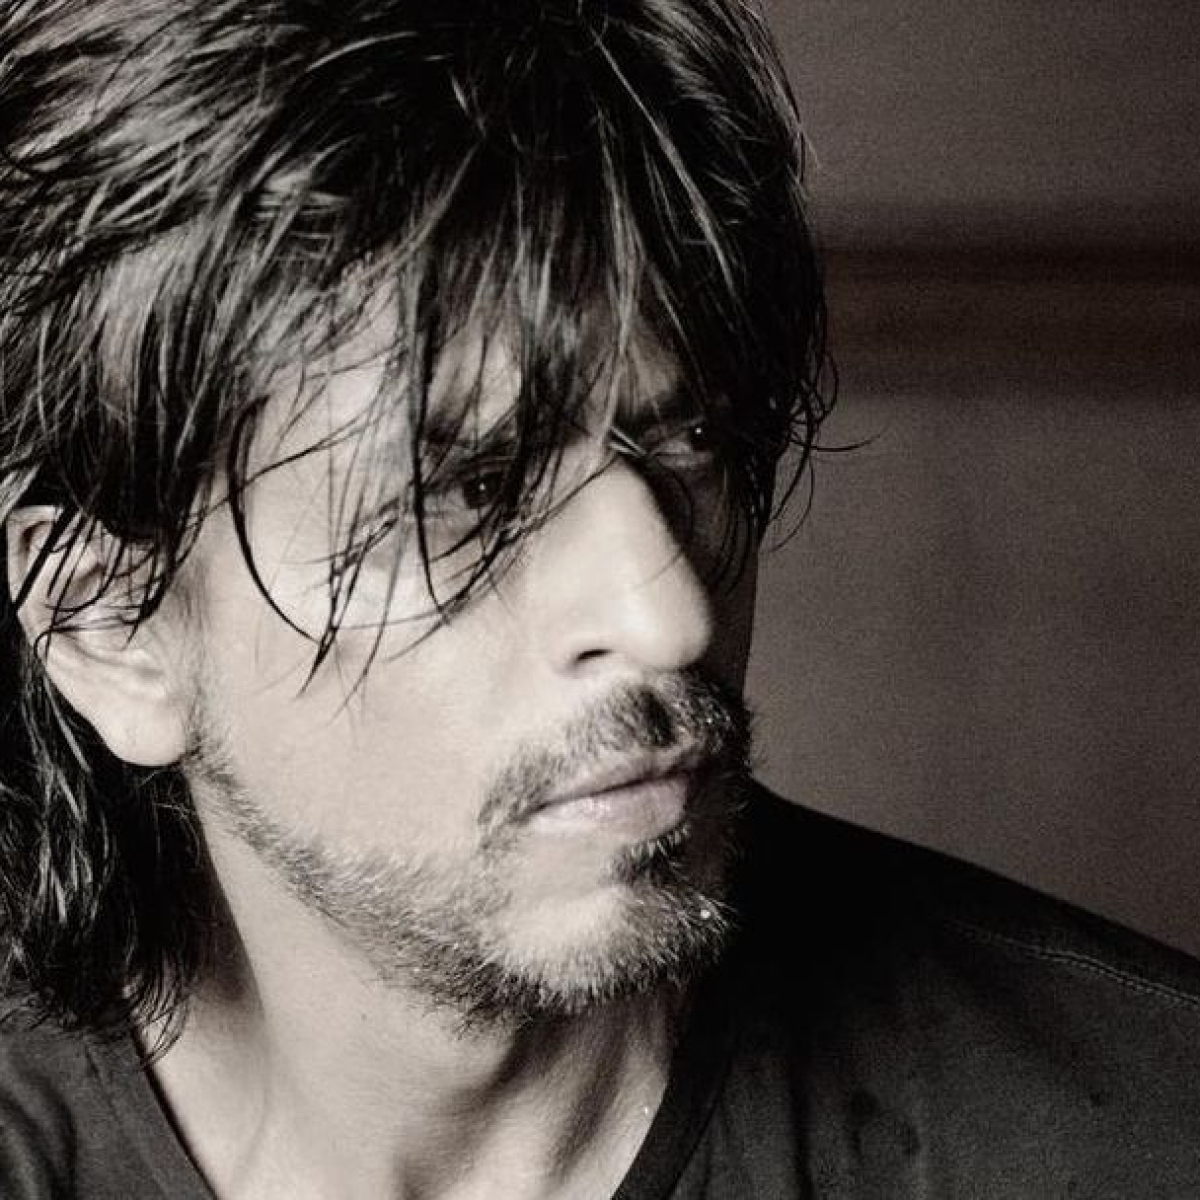 Shah Rukh Khan extends Eid wishes with a monochrome pic, prays for 'health and strength' amid COVID crisis